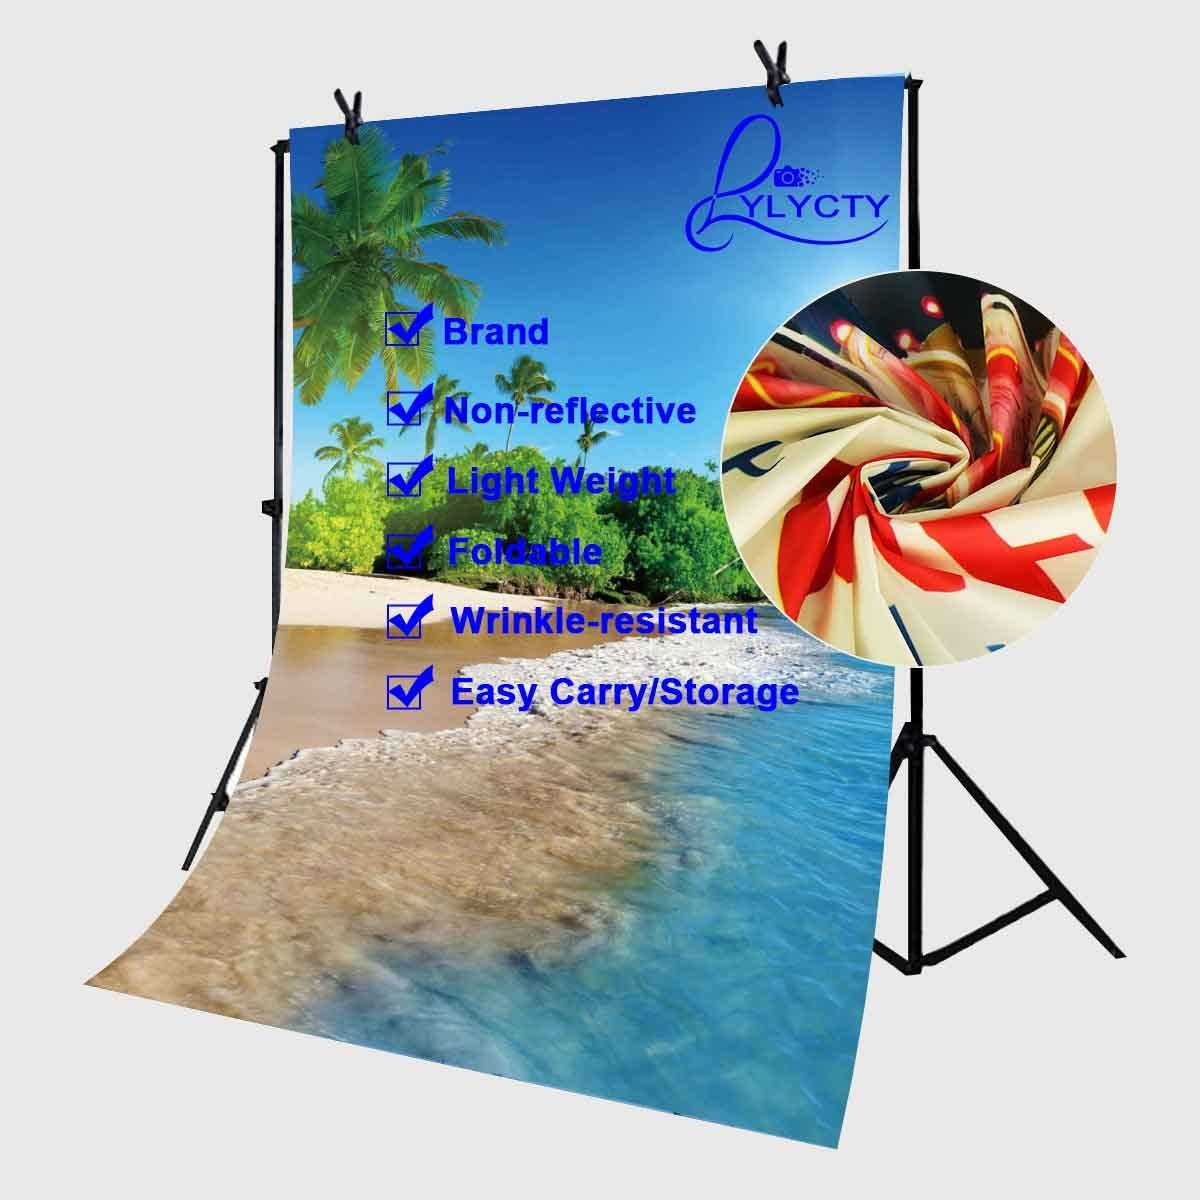 Summer Storm About to Appear with Flash on The Field Solar Illumination Energy Theme Background for Baby Shower Bridal Wedding Studio Photography Pictures Nature 10x15 FT Photography Backdrop